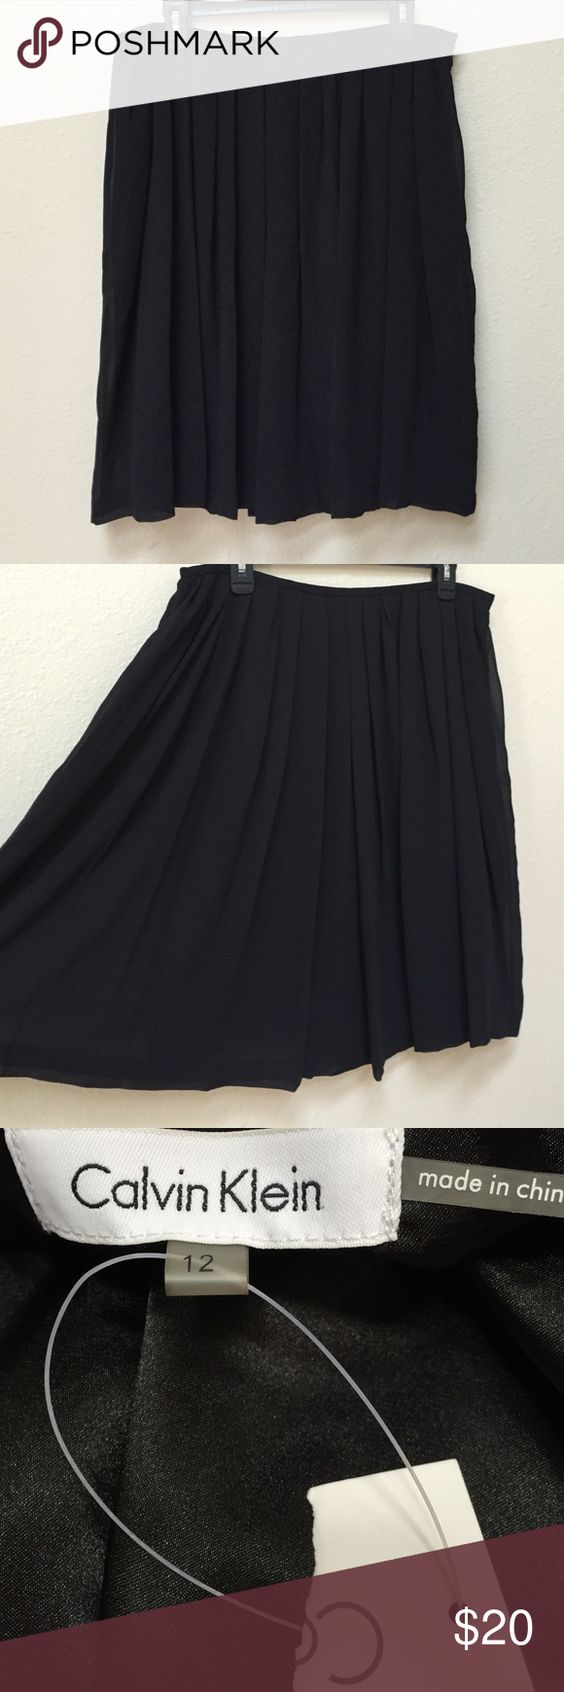 "Black NWT Calvin Klein pleated skirt This is a classic, black Calvin Klein pleated skirt. NWT. Size 12. The shell is made from 100% polyester and lining is 100% polyester. There is a zipper on one side. Length is approximately 23"". Calvin Klein Skirts"